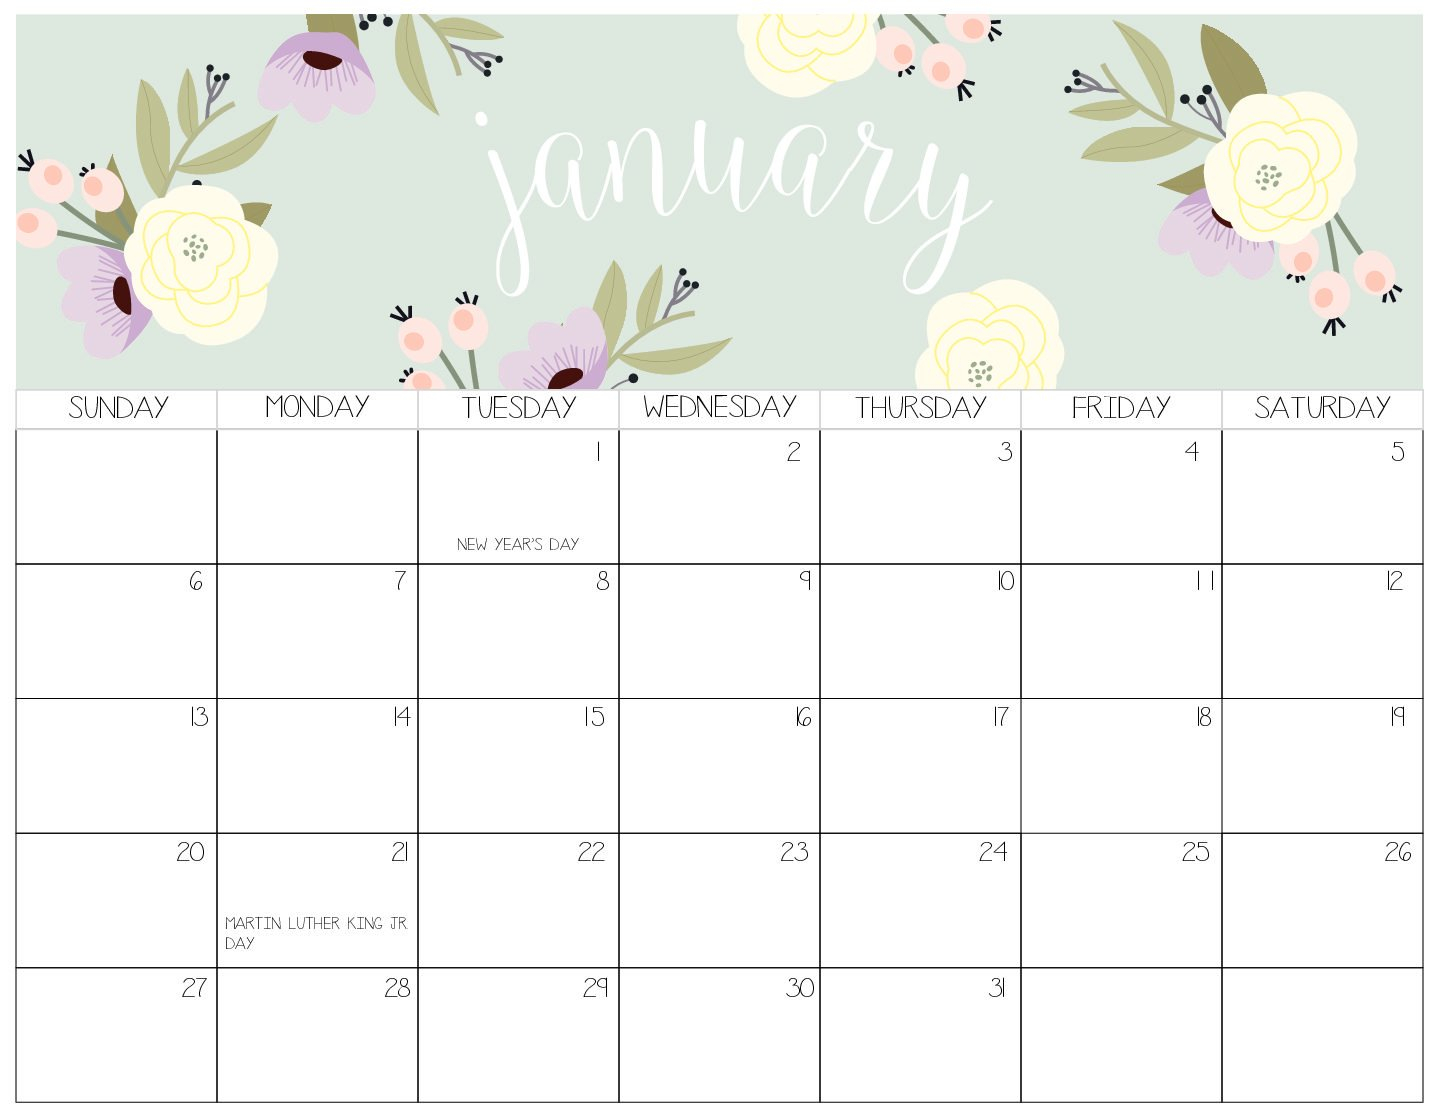 Index Of /wp-Content/uploads/2018/07 Calendar 2019 Blog